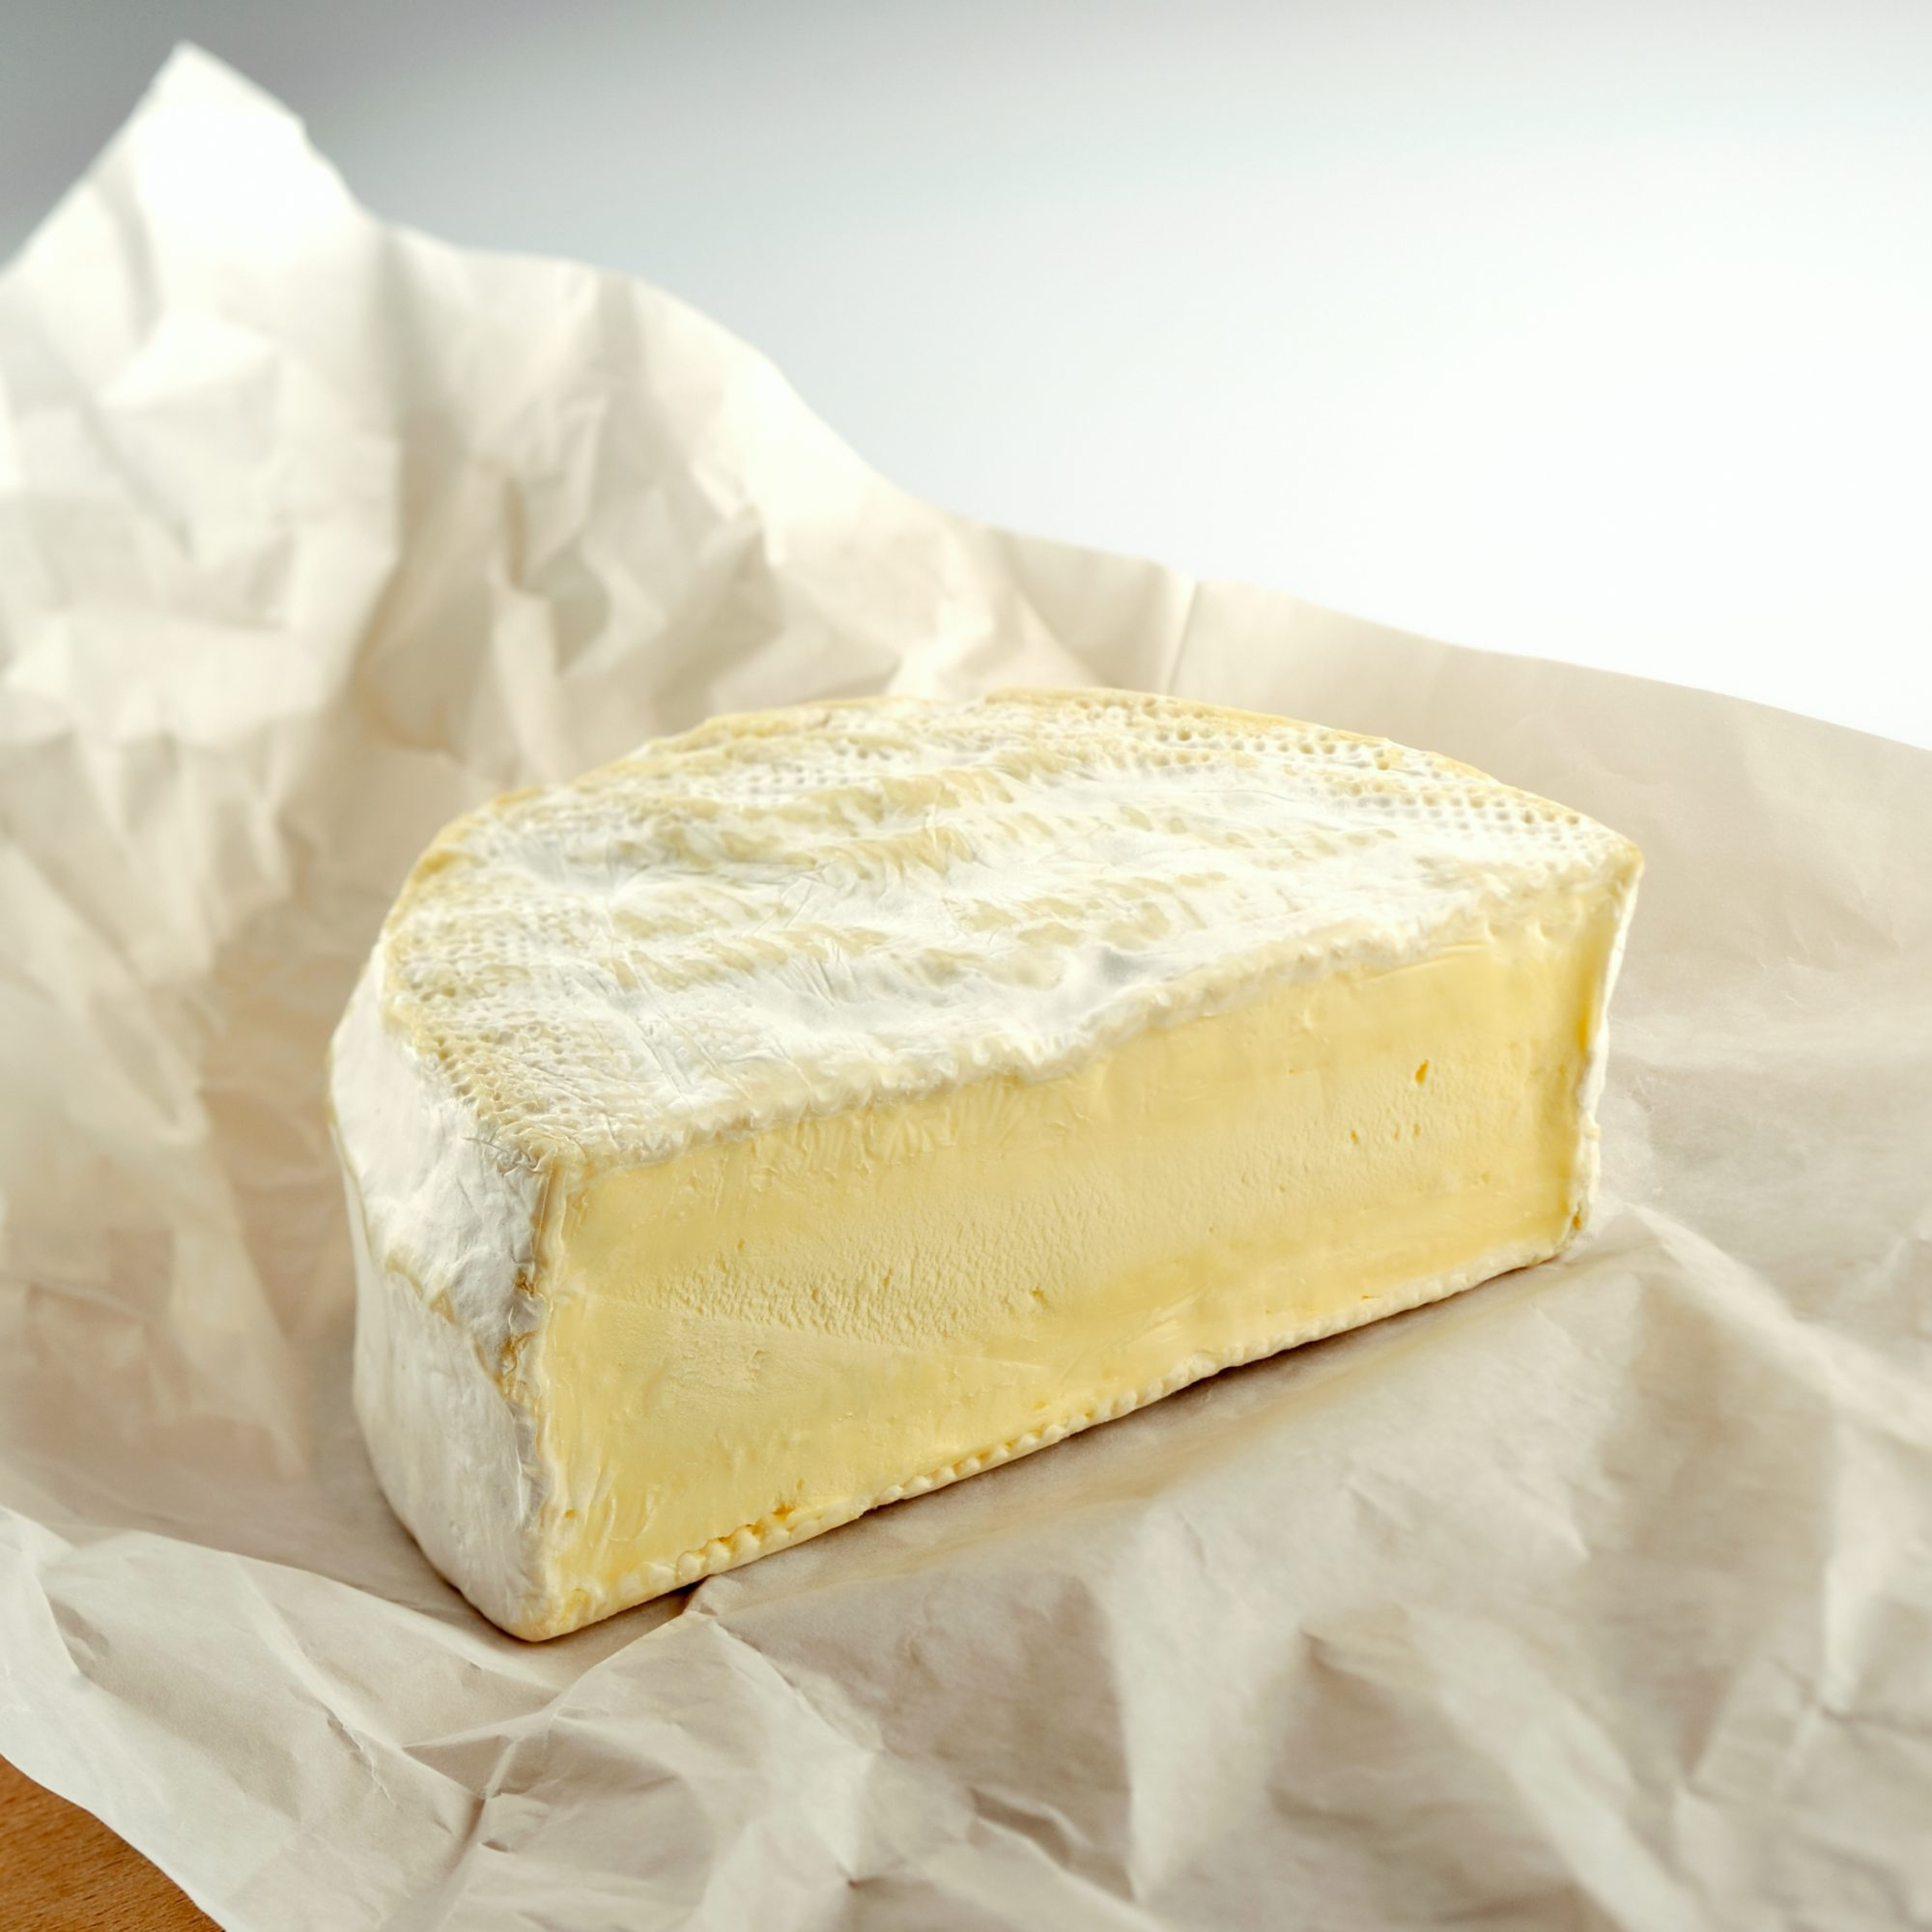 """""""Half wheel of Brillat-Savarin, a French brie made in Normandy. Shallow DOF but great texture on cheese."""""""